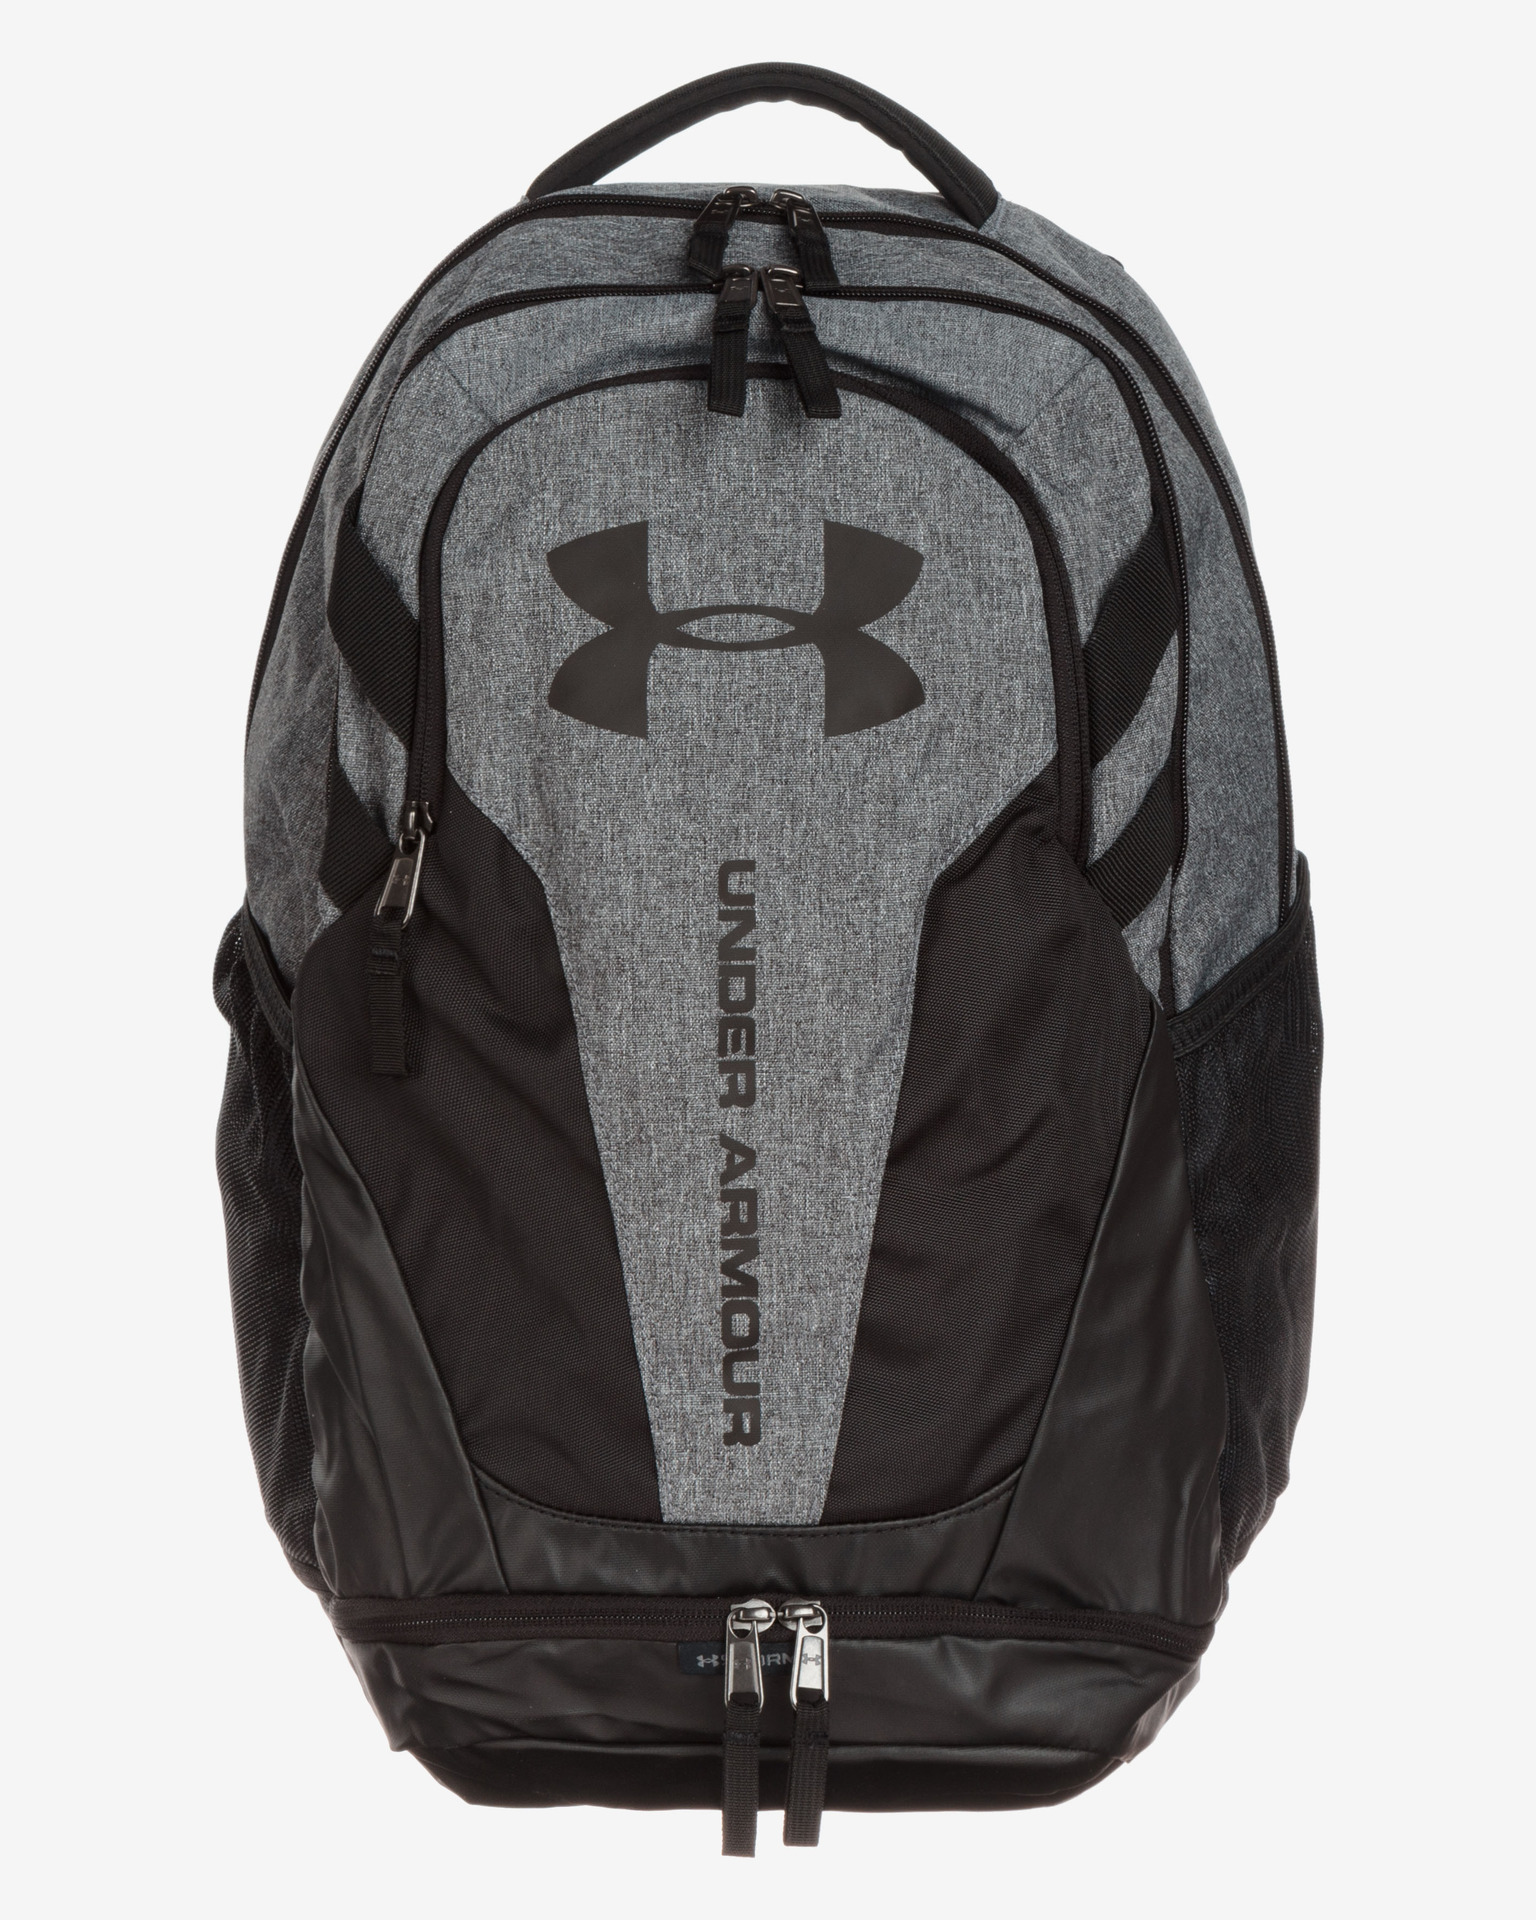 53936ecd4 Under Armour - Hustle 3.0 Backpack Bibloo.com